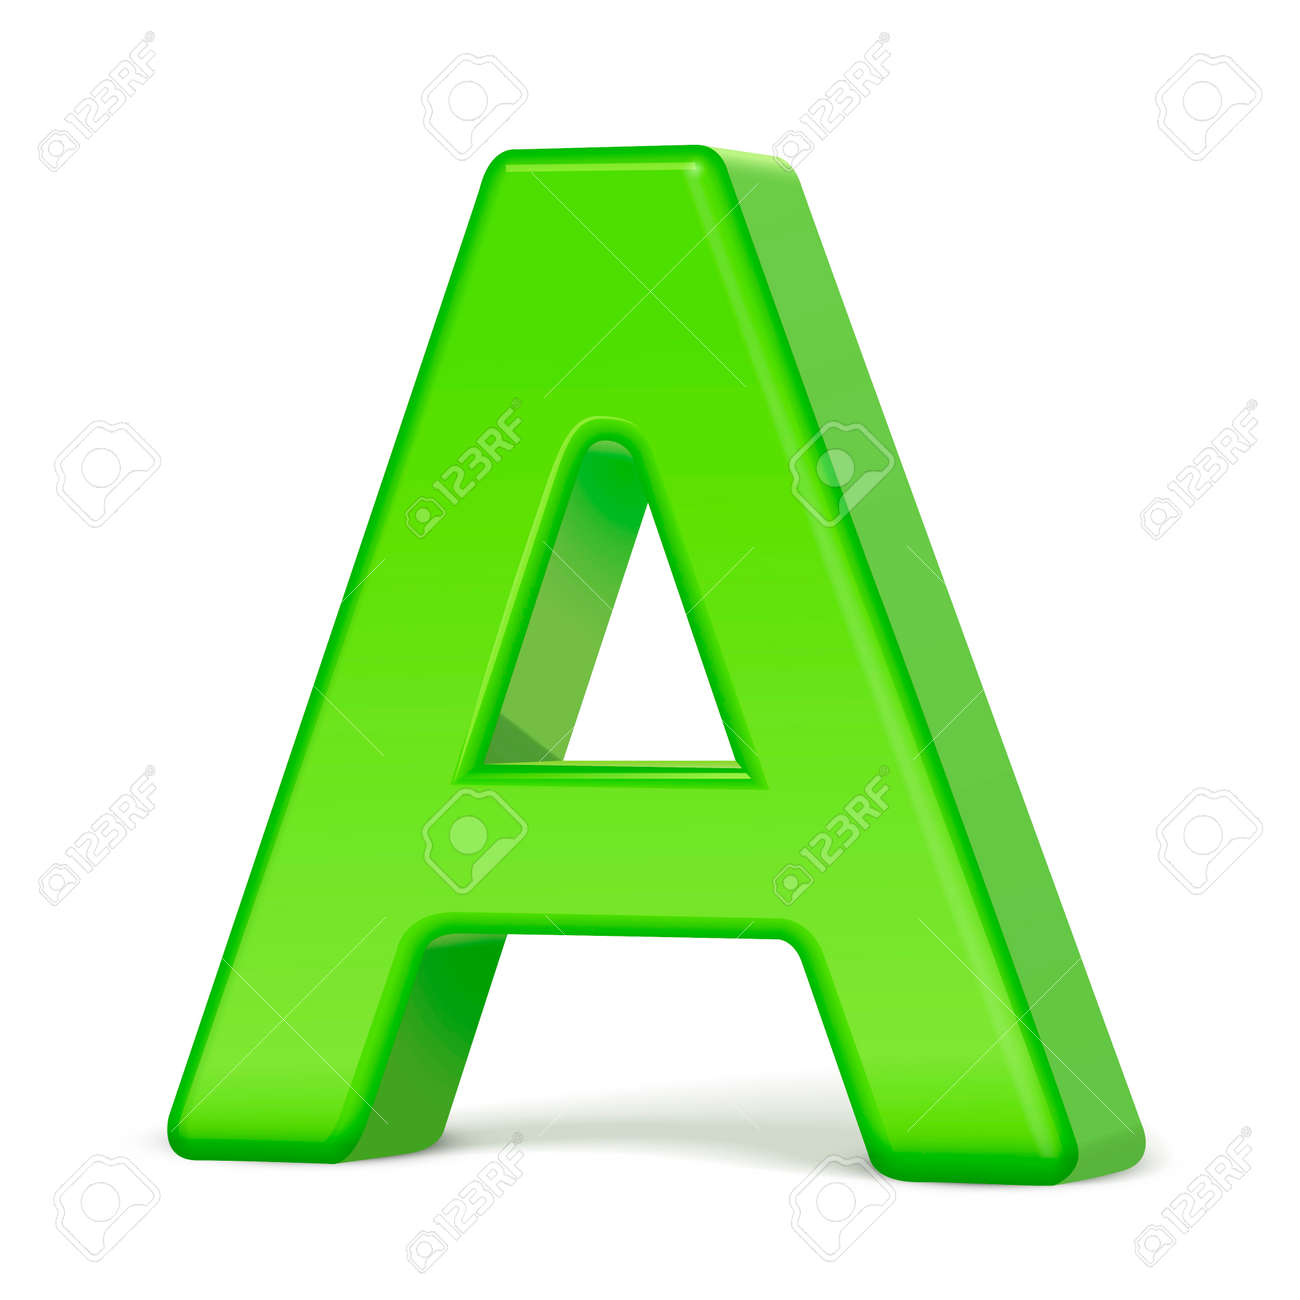 hight resolution of 3d illustration light green letter a isolated white background stock vector 65133894